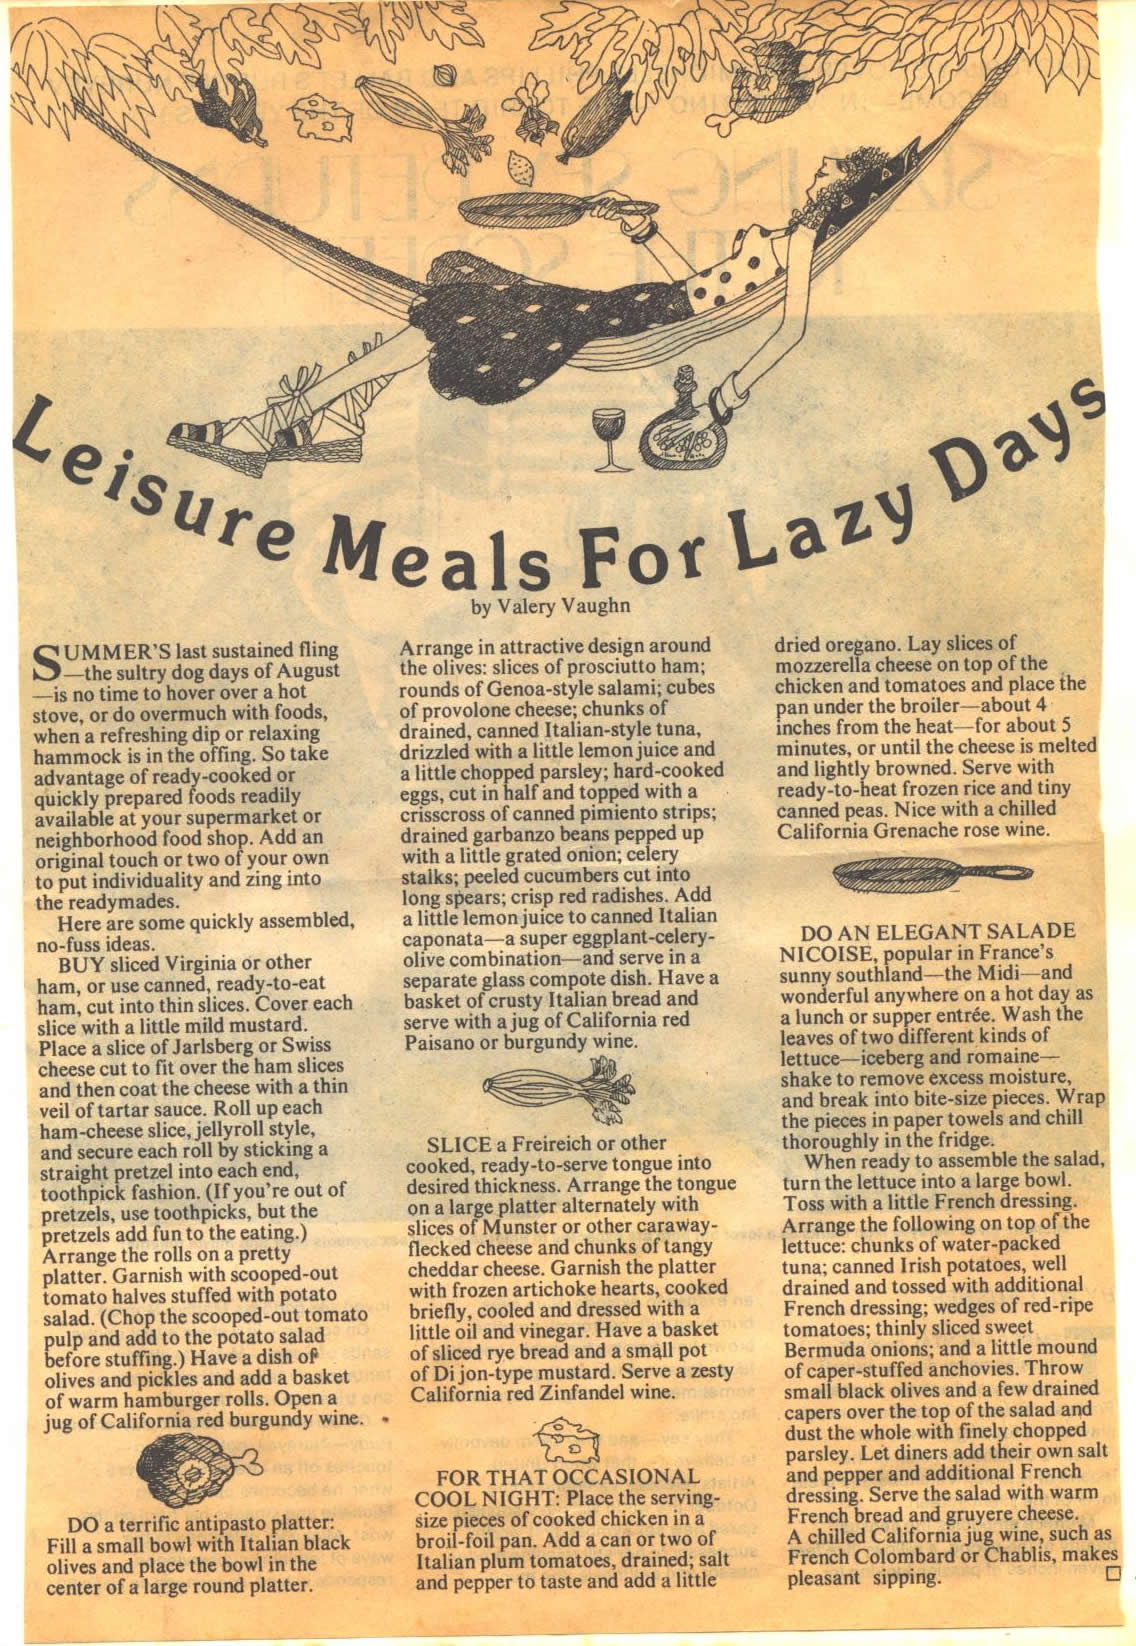 leisure-meals-for-lazy-days